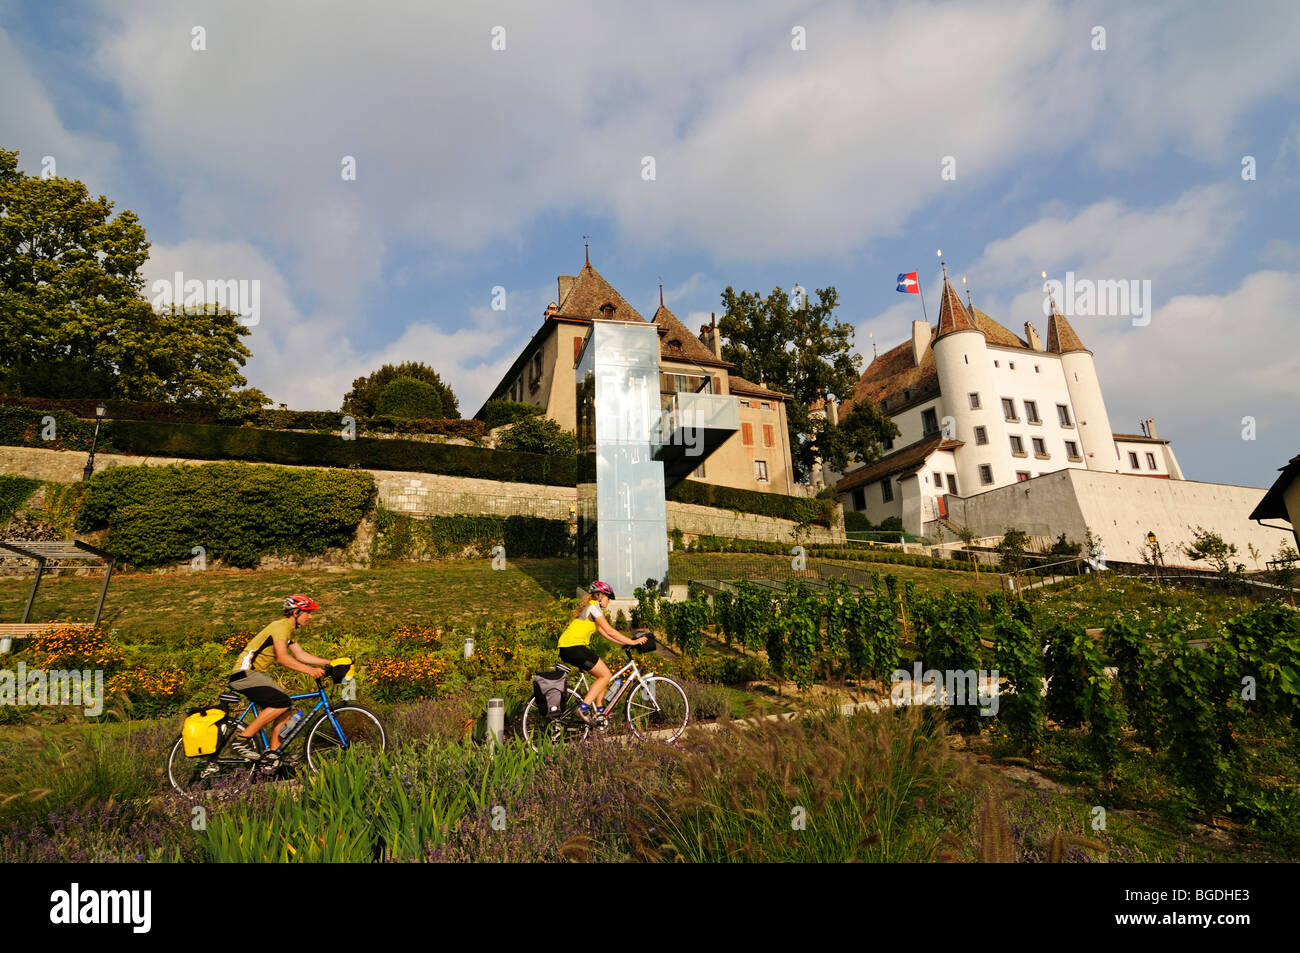 Cyclists in front of the Chateau de Nyon palace, Lake Geneva, Canton Vaud, Switzerland, Europe - Stock Image